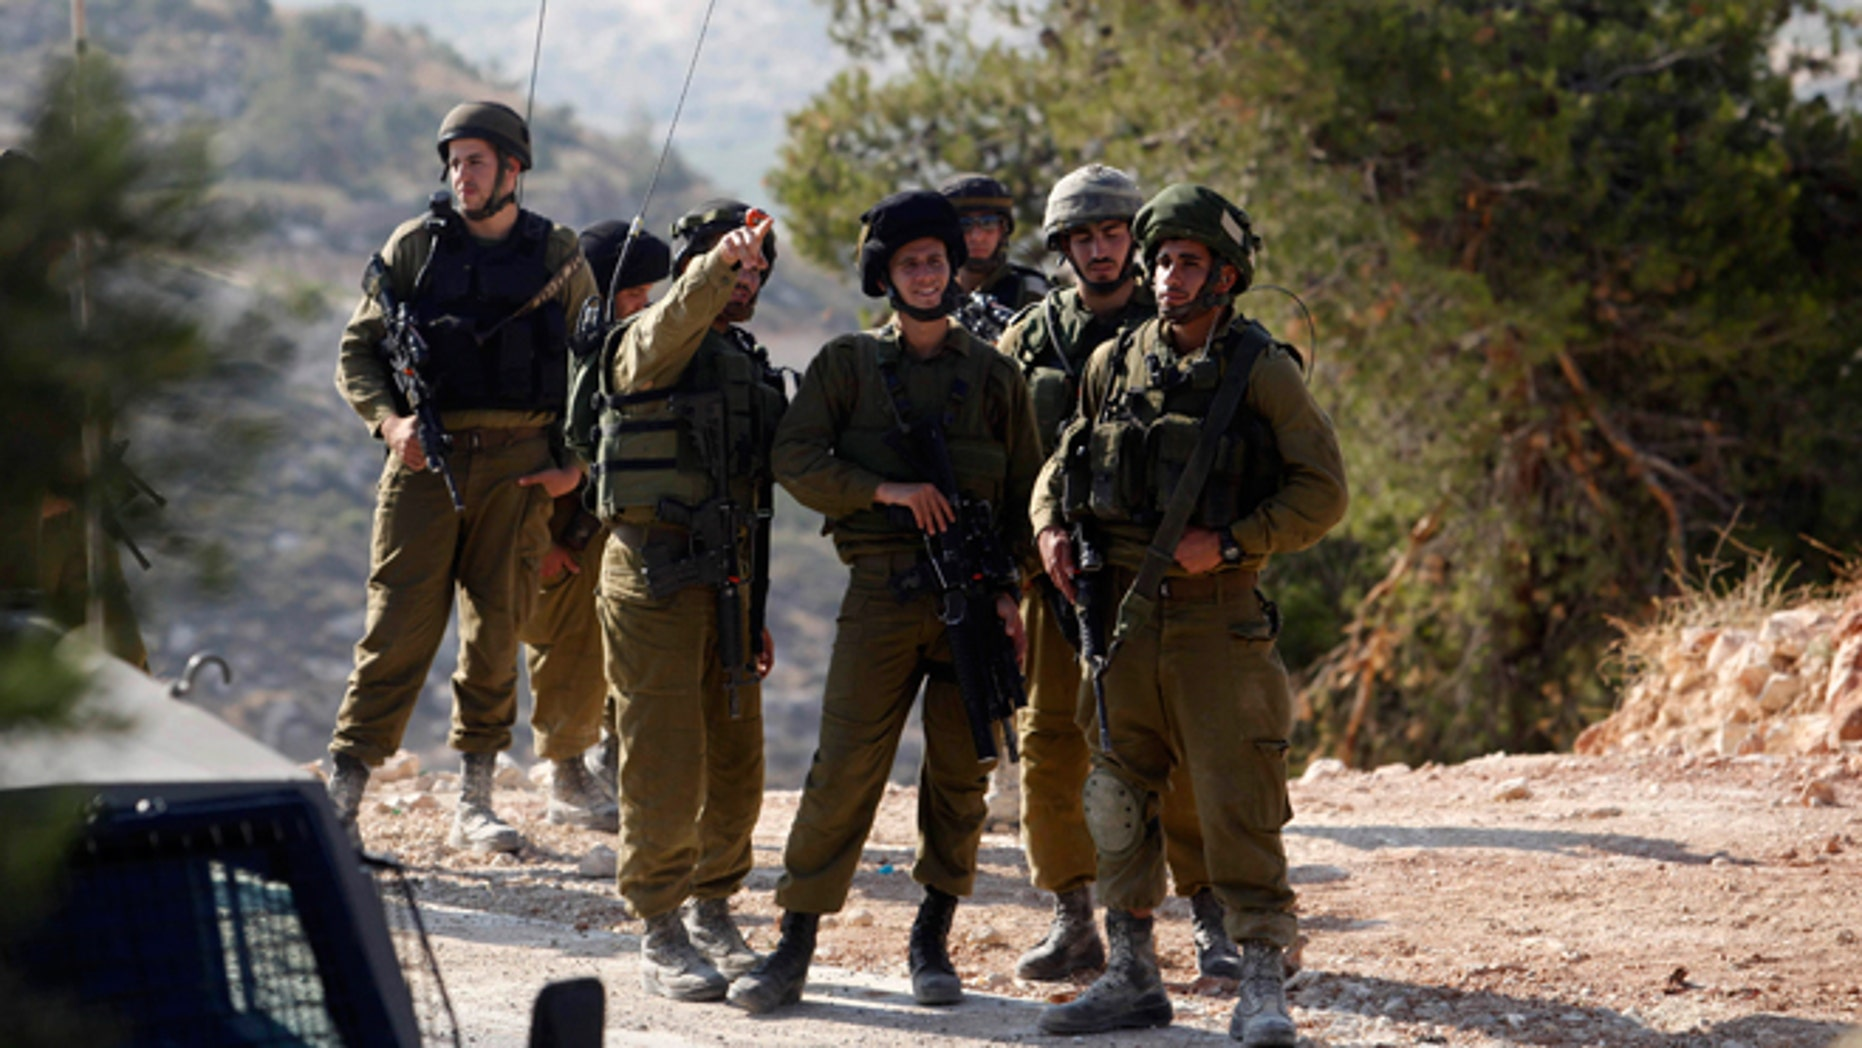 Israeli soldiers deploy near the West Bank city of Hebron, Friday, June 13, 2014. Israeli soldiers searched the West Bank on Friday for three missing teenagers from nearby settlements, one of them a U.S. citizen, amid fears Palestinian militants abducted them, authorities said.